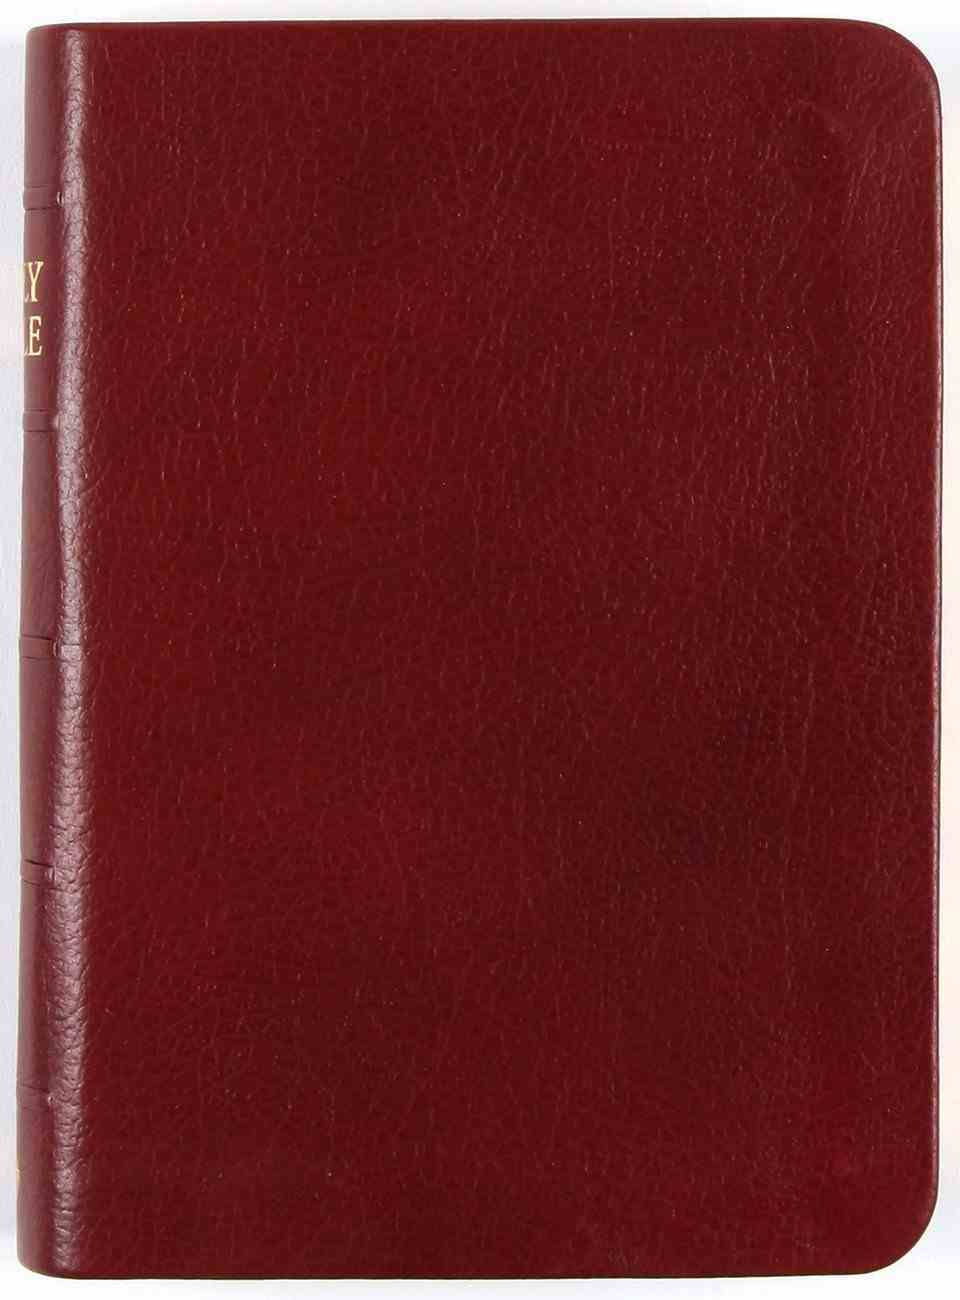 KJV Pocket Holy Bible Reference Burgundy Compact (Black Letter Edition) Genuine Leather